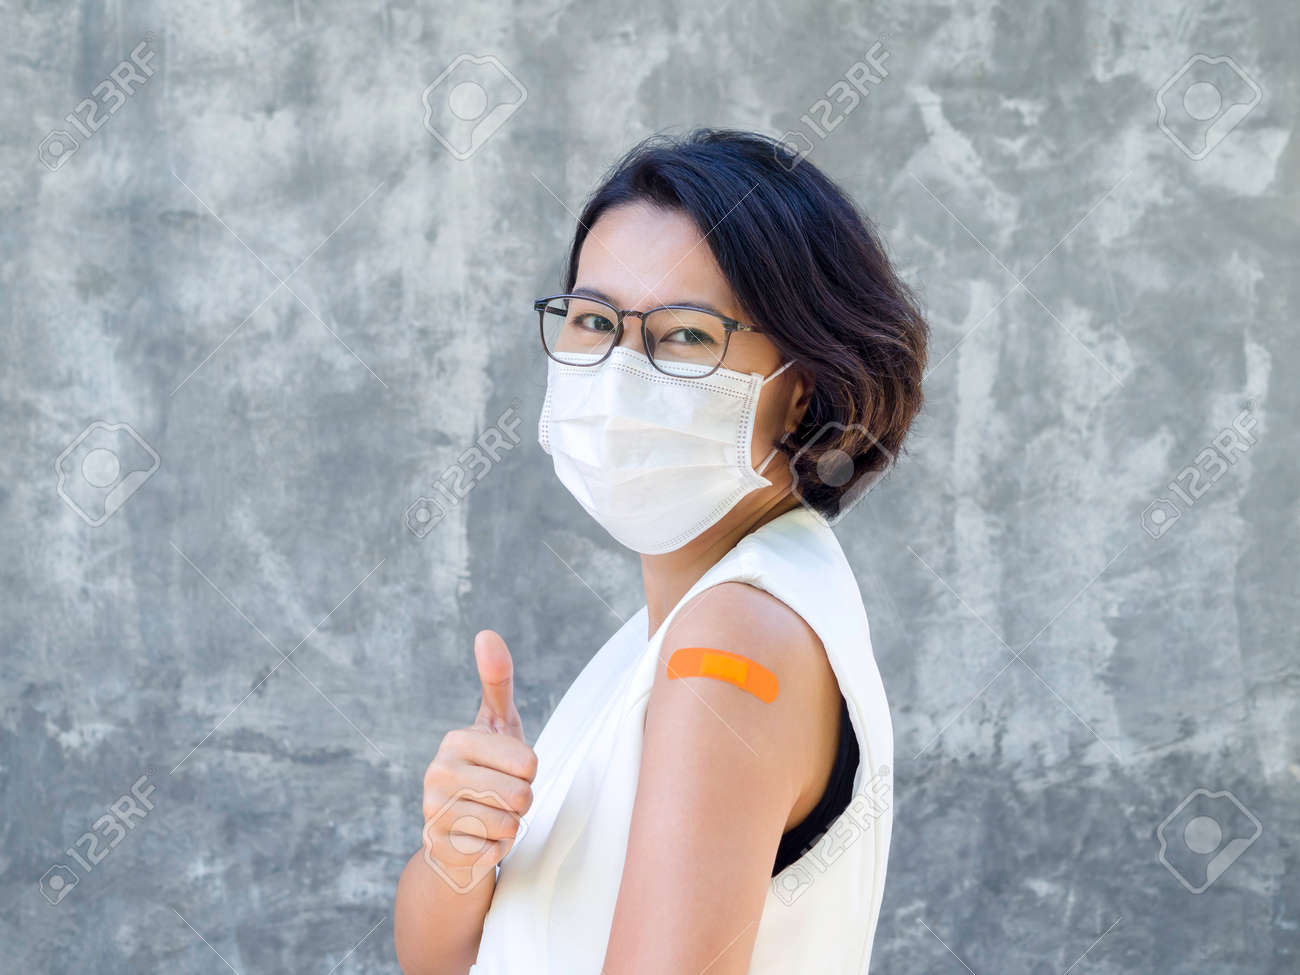 Vaccinations, bandage on vaccinated people's arm concept. Happy business Asian woman wearing white blazer vest, face mask, glasses showing orange bandage and thumb up, after vaccination treatment. - 170936932